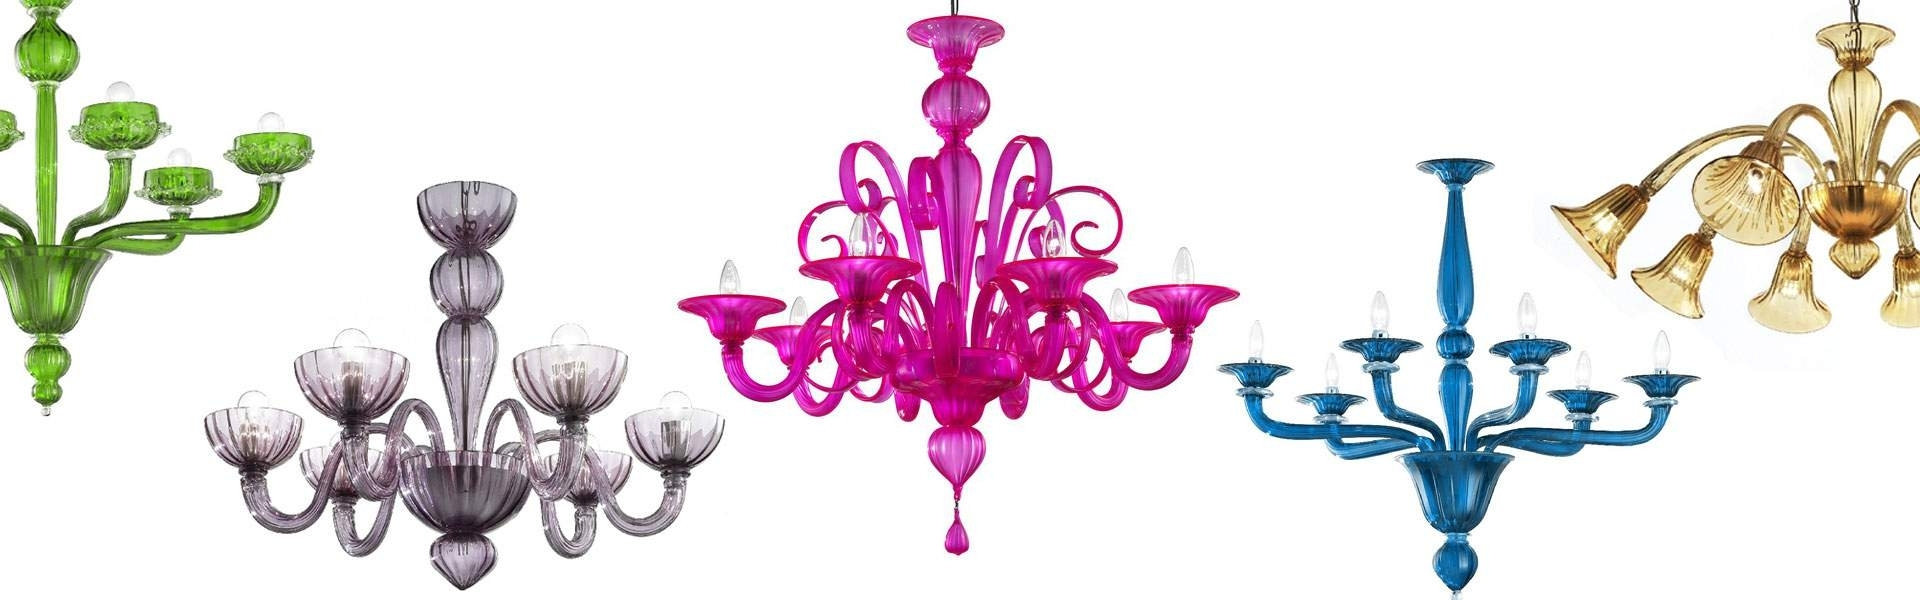 Murano Glass Chandeliers For Sale From Italy Within Coloured Chandeliers (View 15 of 20)